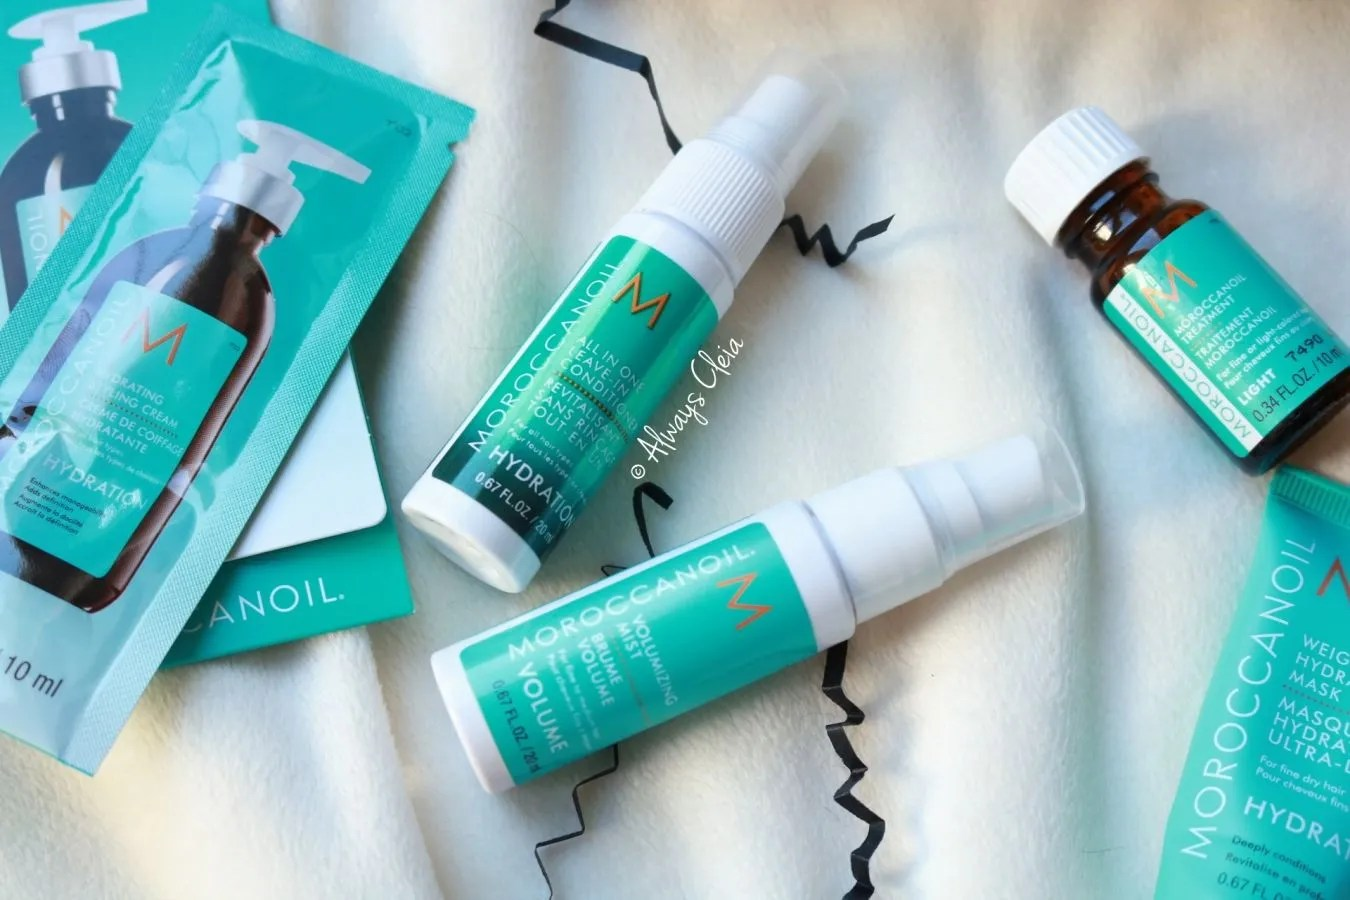 Moroccan Oil Haircare Products